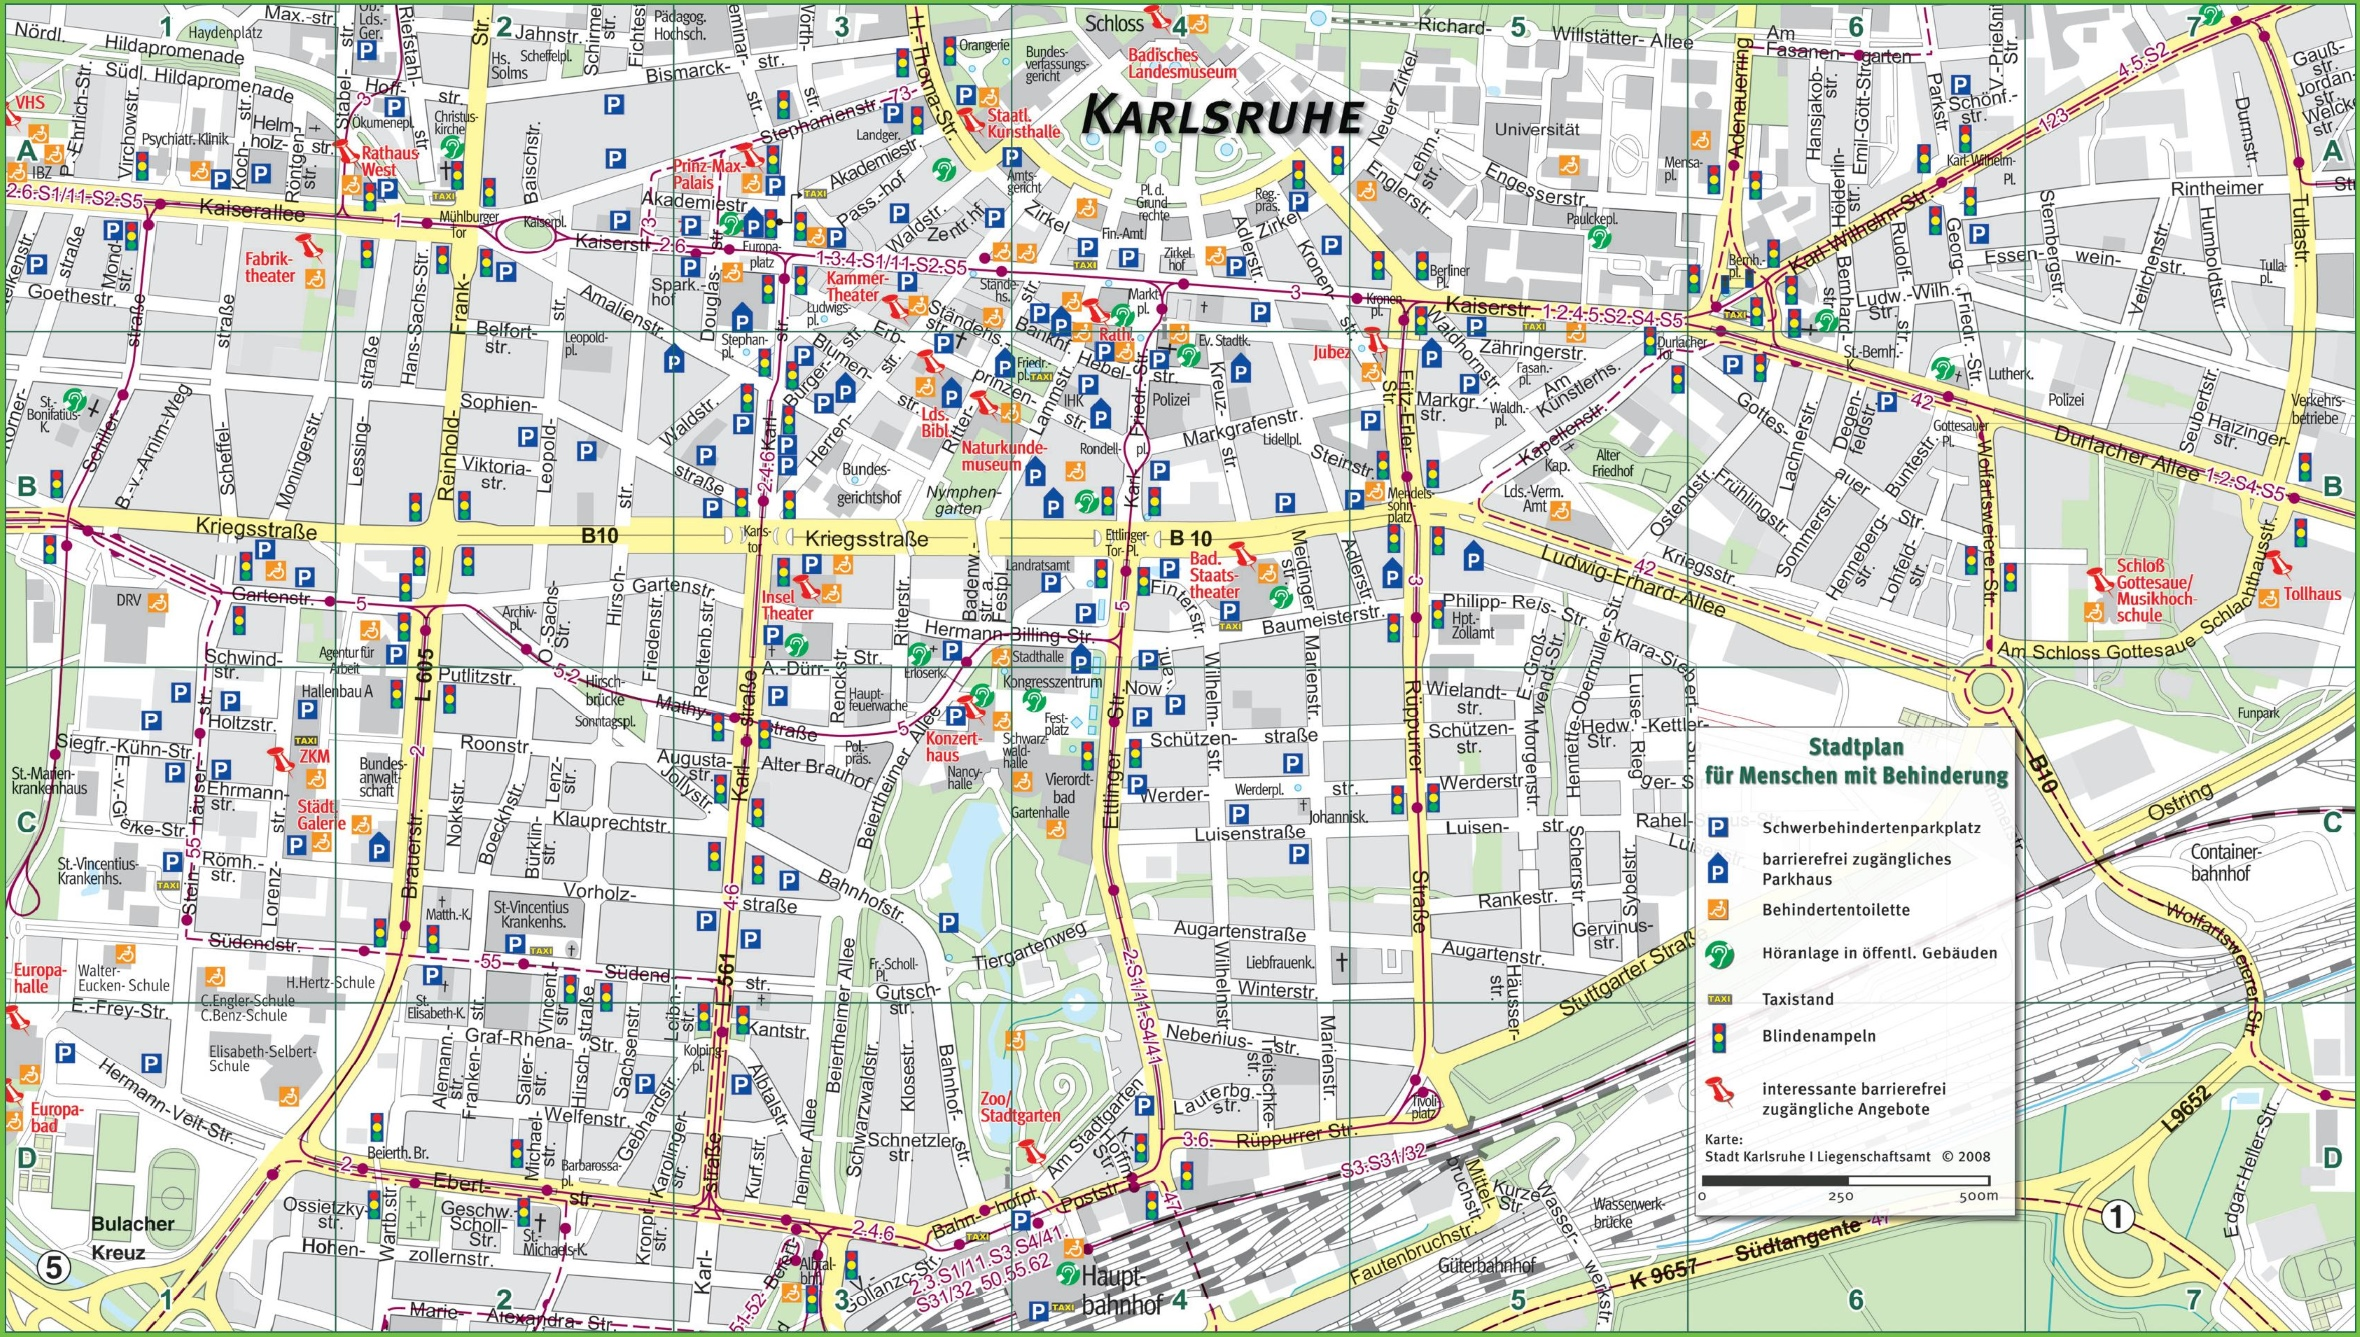 Karlsruhe tourist map